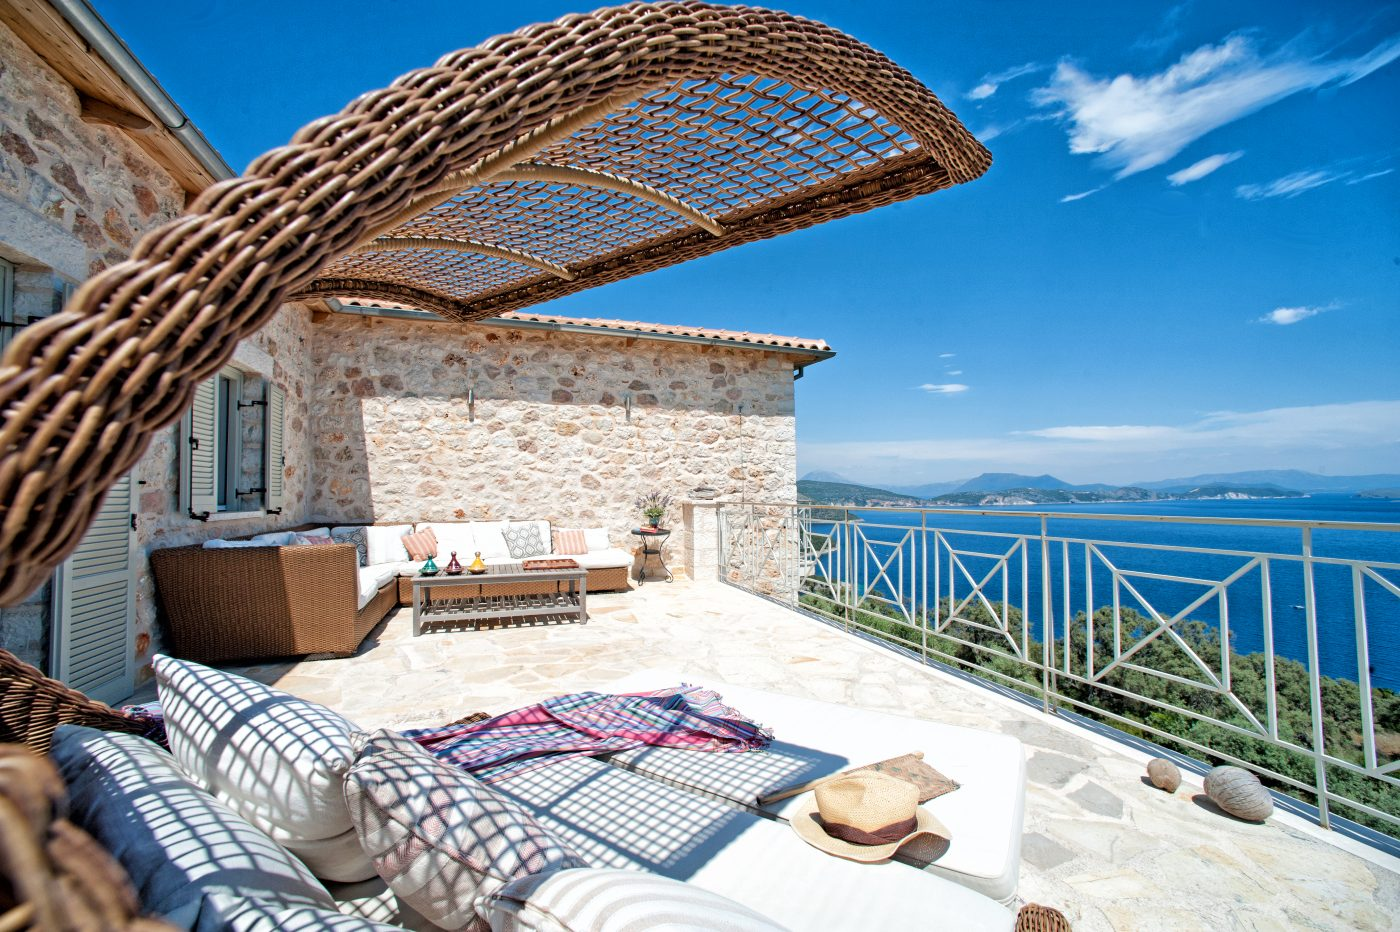 Kalokairi A Luxury Villa In Lefkada Greece To Sleep 10